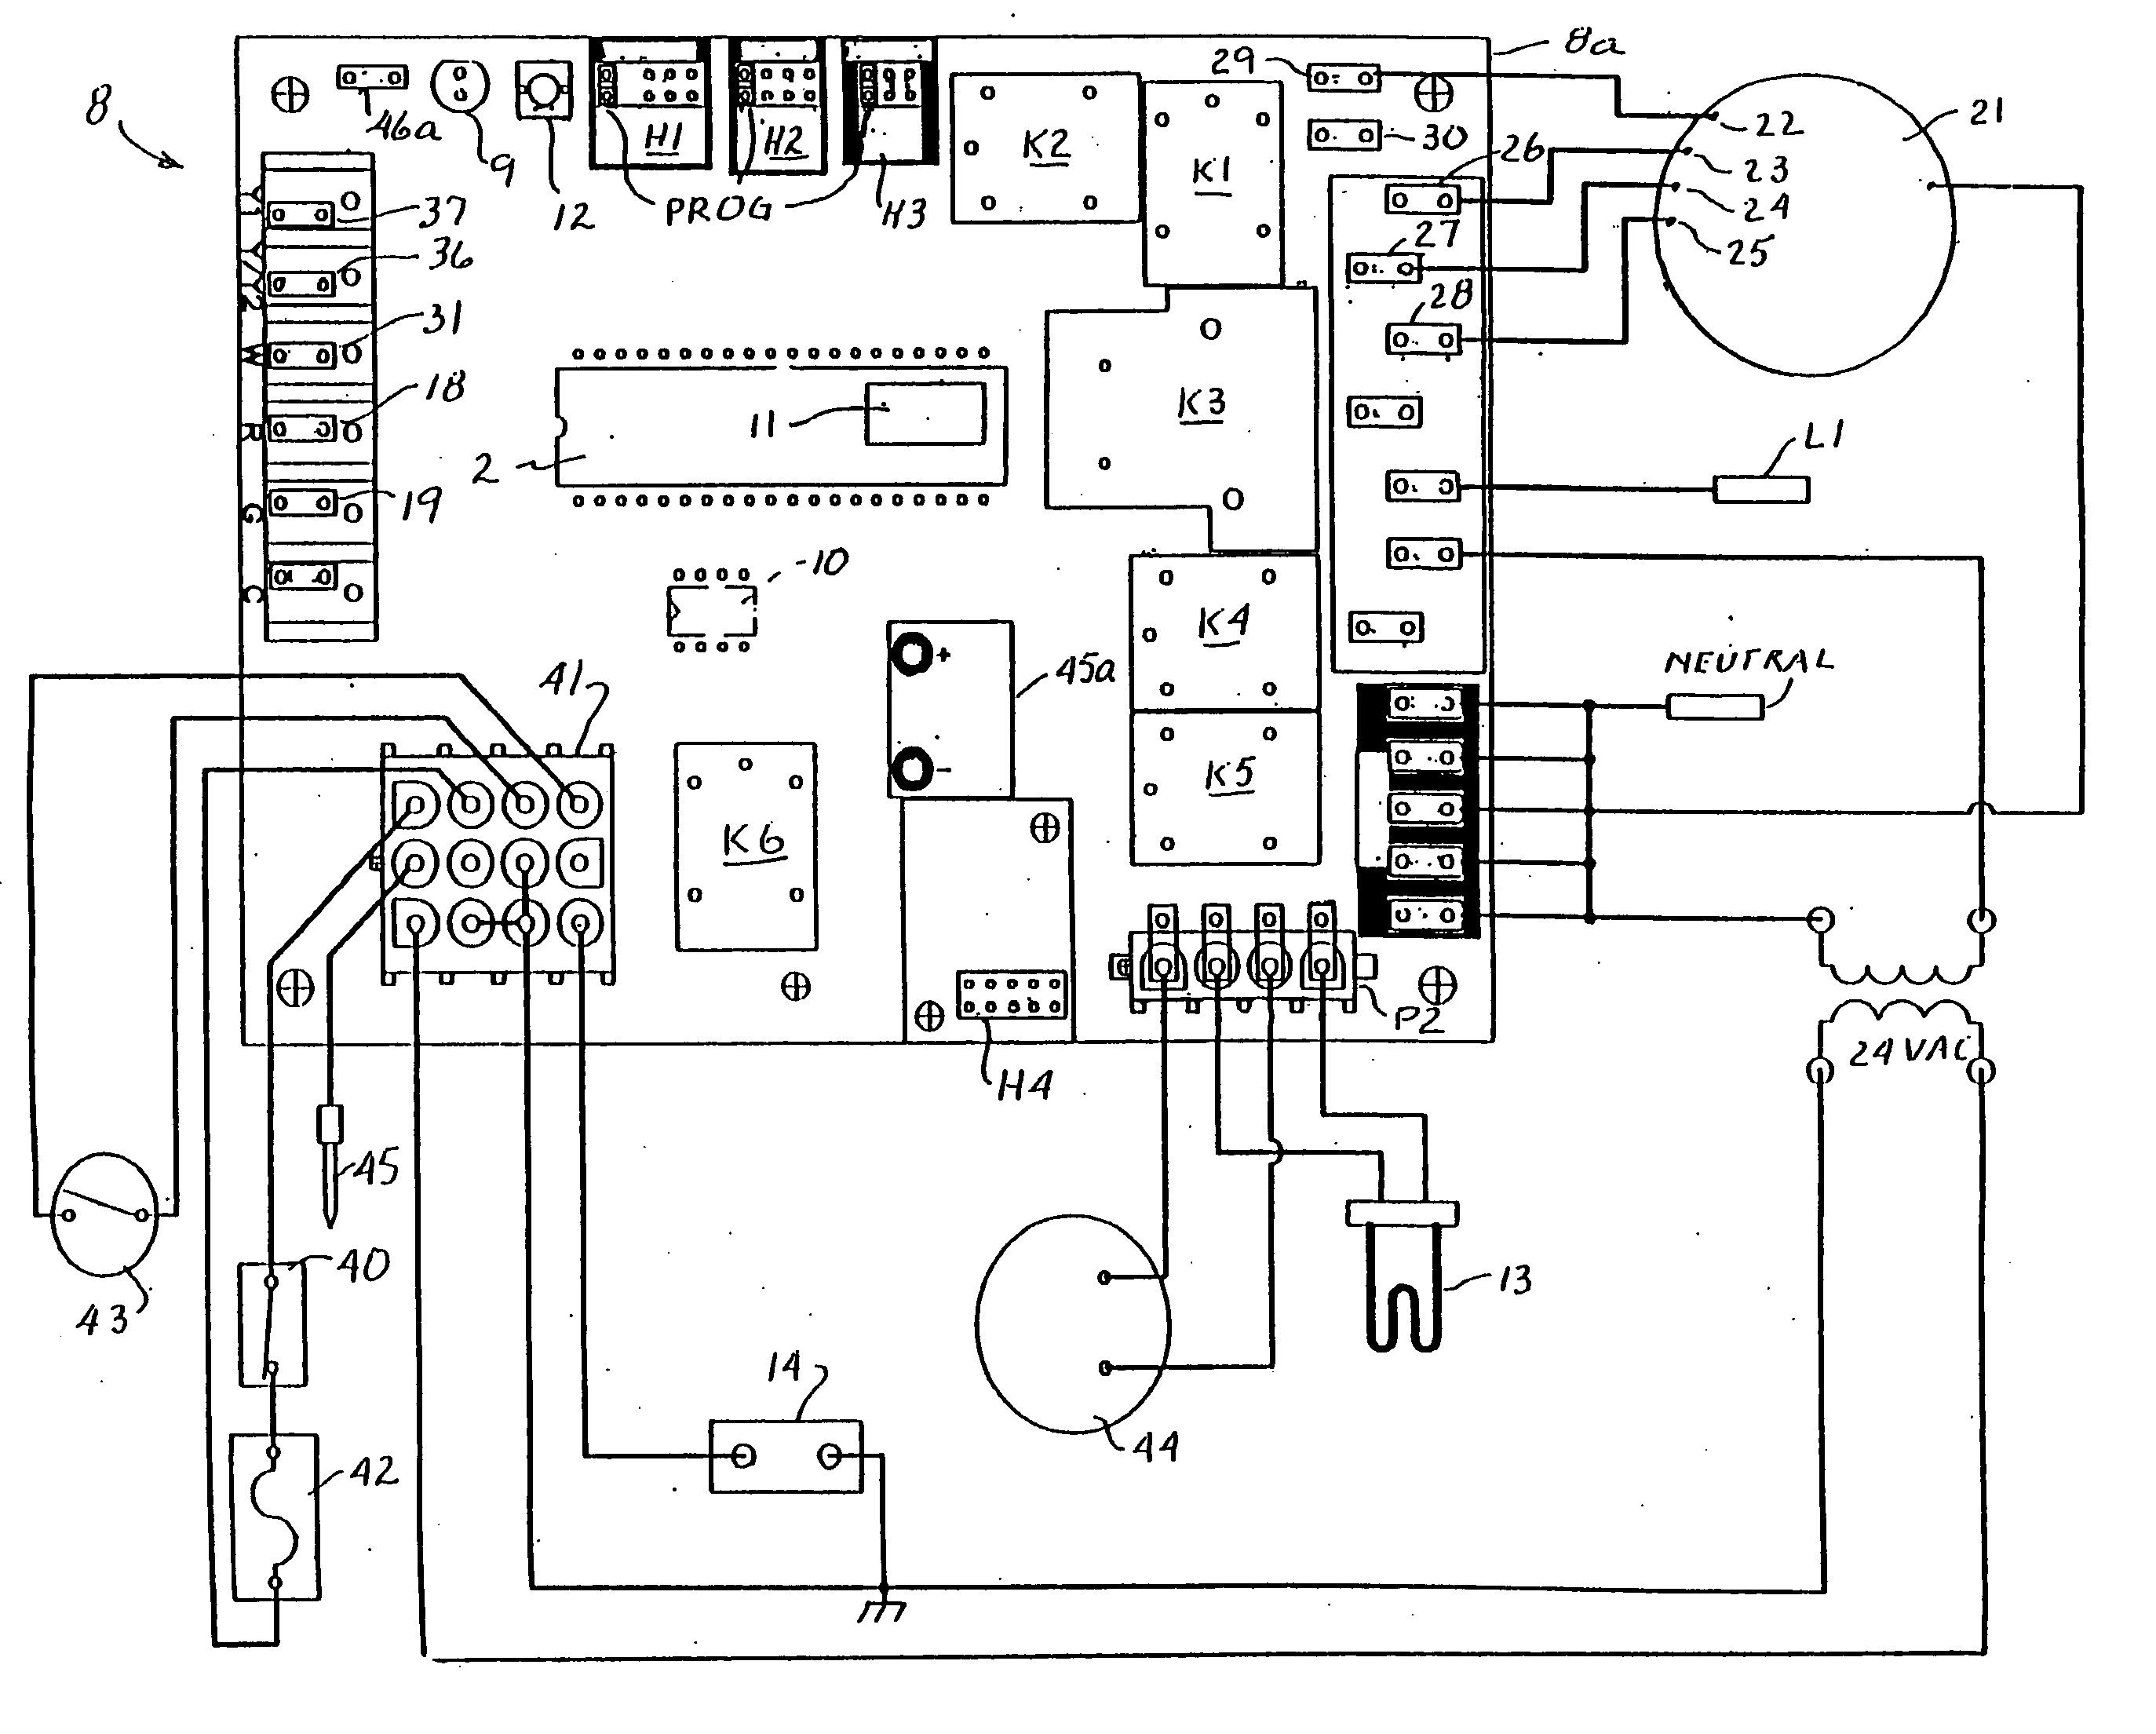 US20040230402A1 20041118 D00000 gas furnace thermostat wiring diagram & acc0436 wiring diagram Furnace Wiring Diagram Older Furnace at soozxer.org